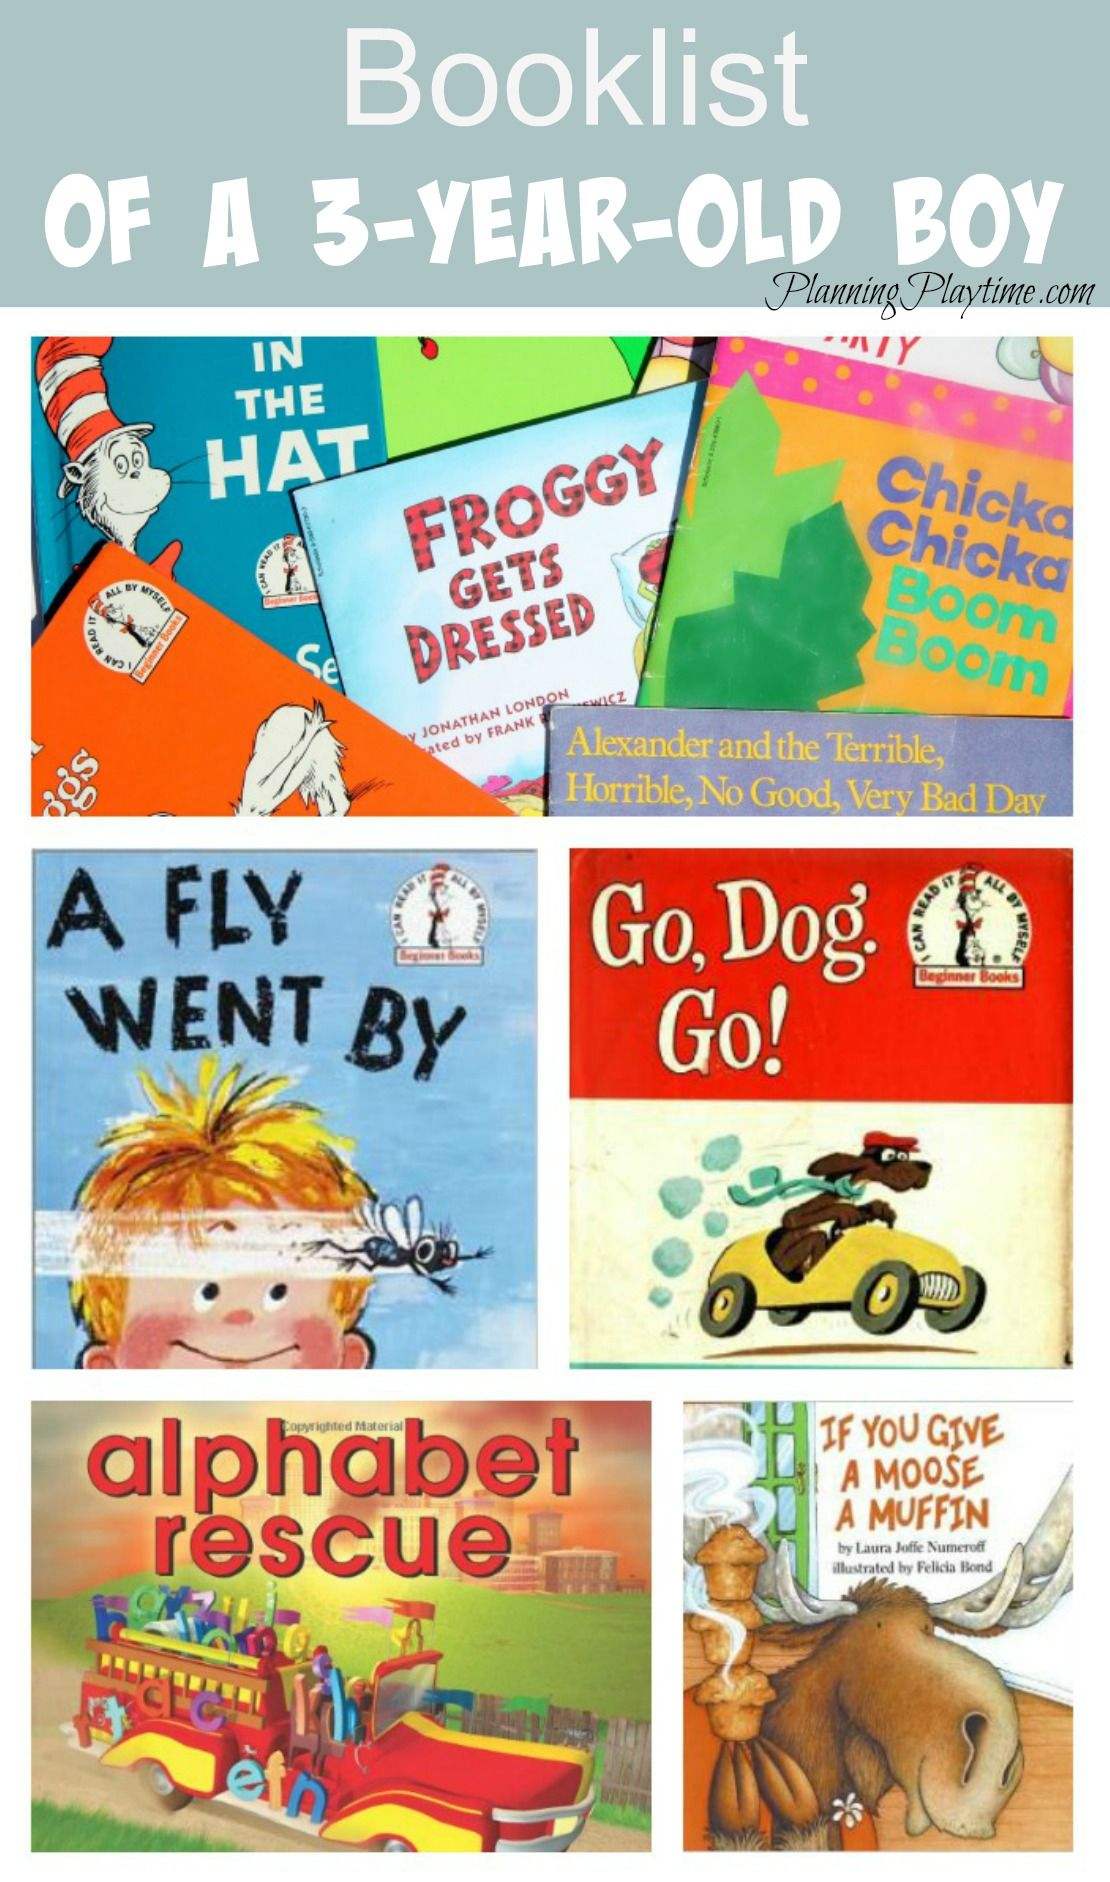 Top Book List for a 3 Year Old Boy